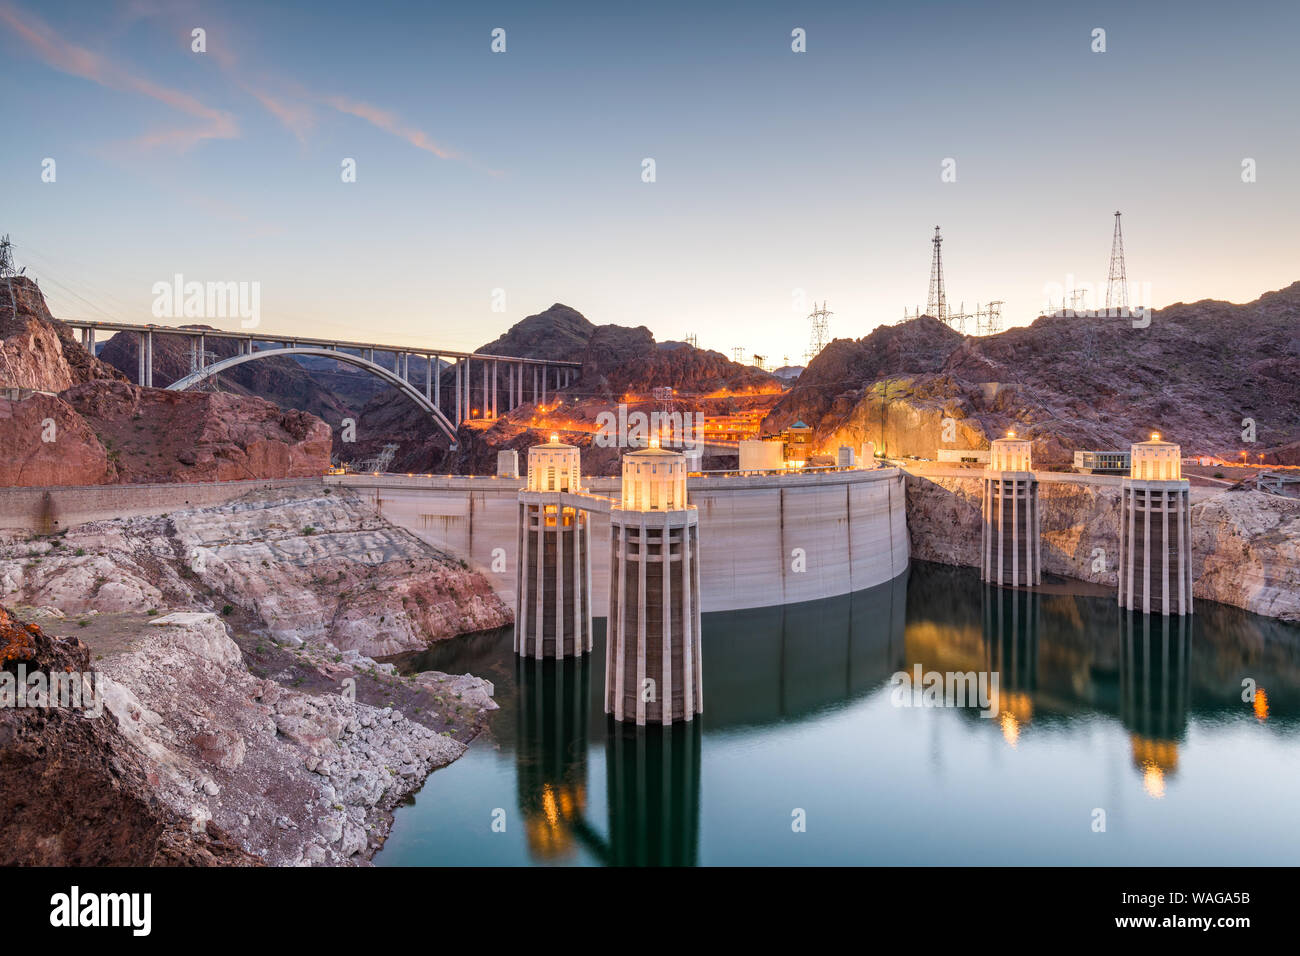 Hooover Dam on the Colorado River straddling Nevada and Arizona at dusk. Stock Photo